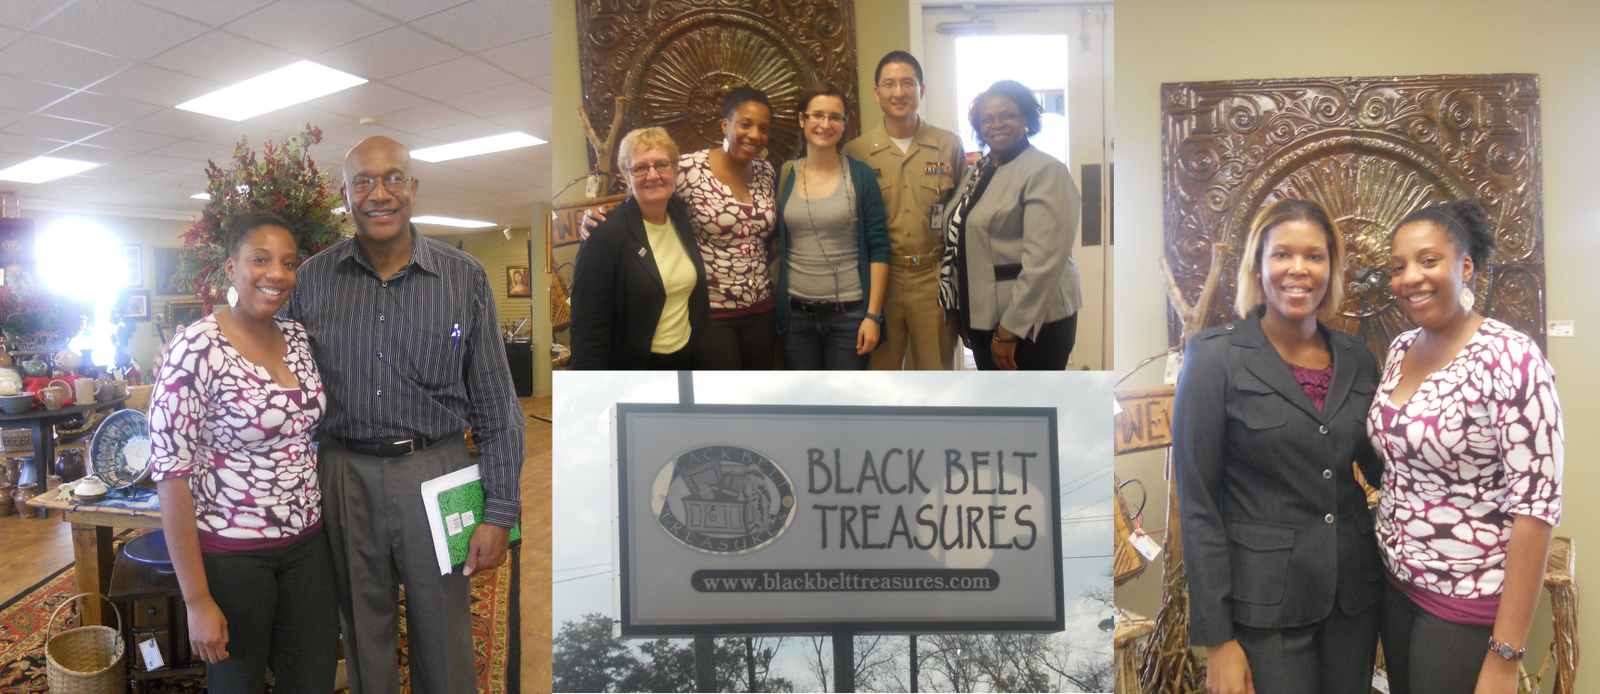 Alabama wilcox county camden - The Final Stop On This Trip To Camden Was A Visit To Black Belt Treasures The Location For A Lot Of The Work Carried Out By Uab Interns And Wilcox High